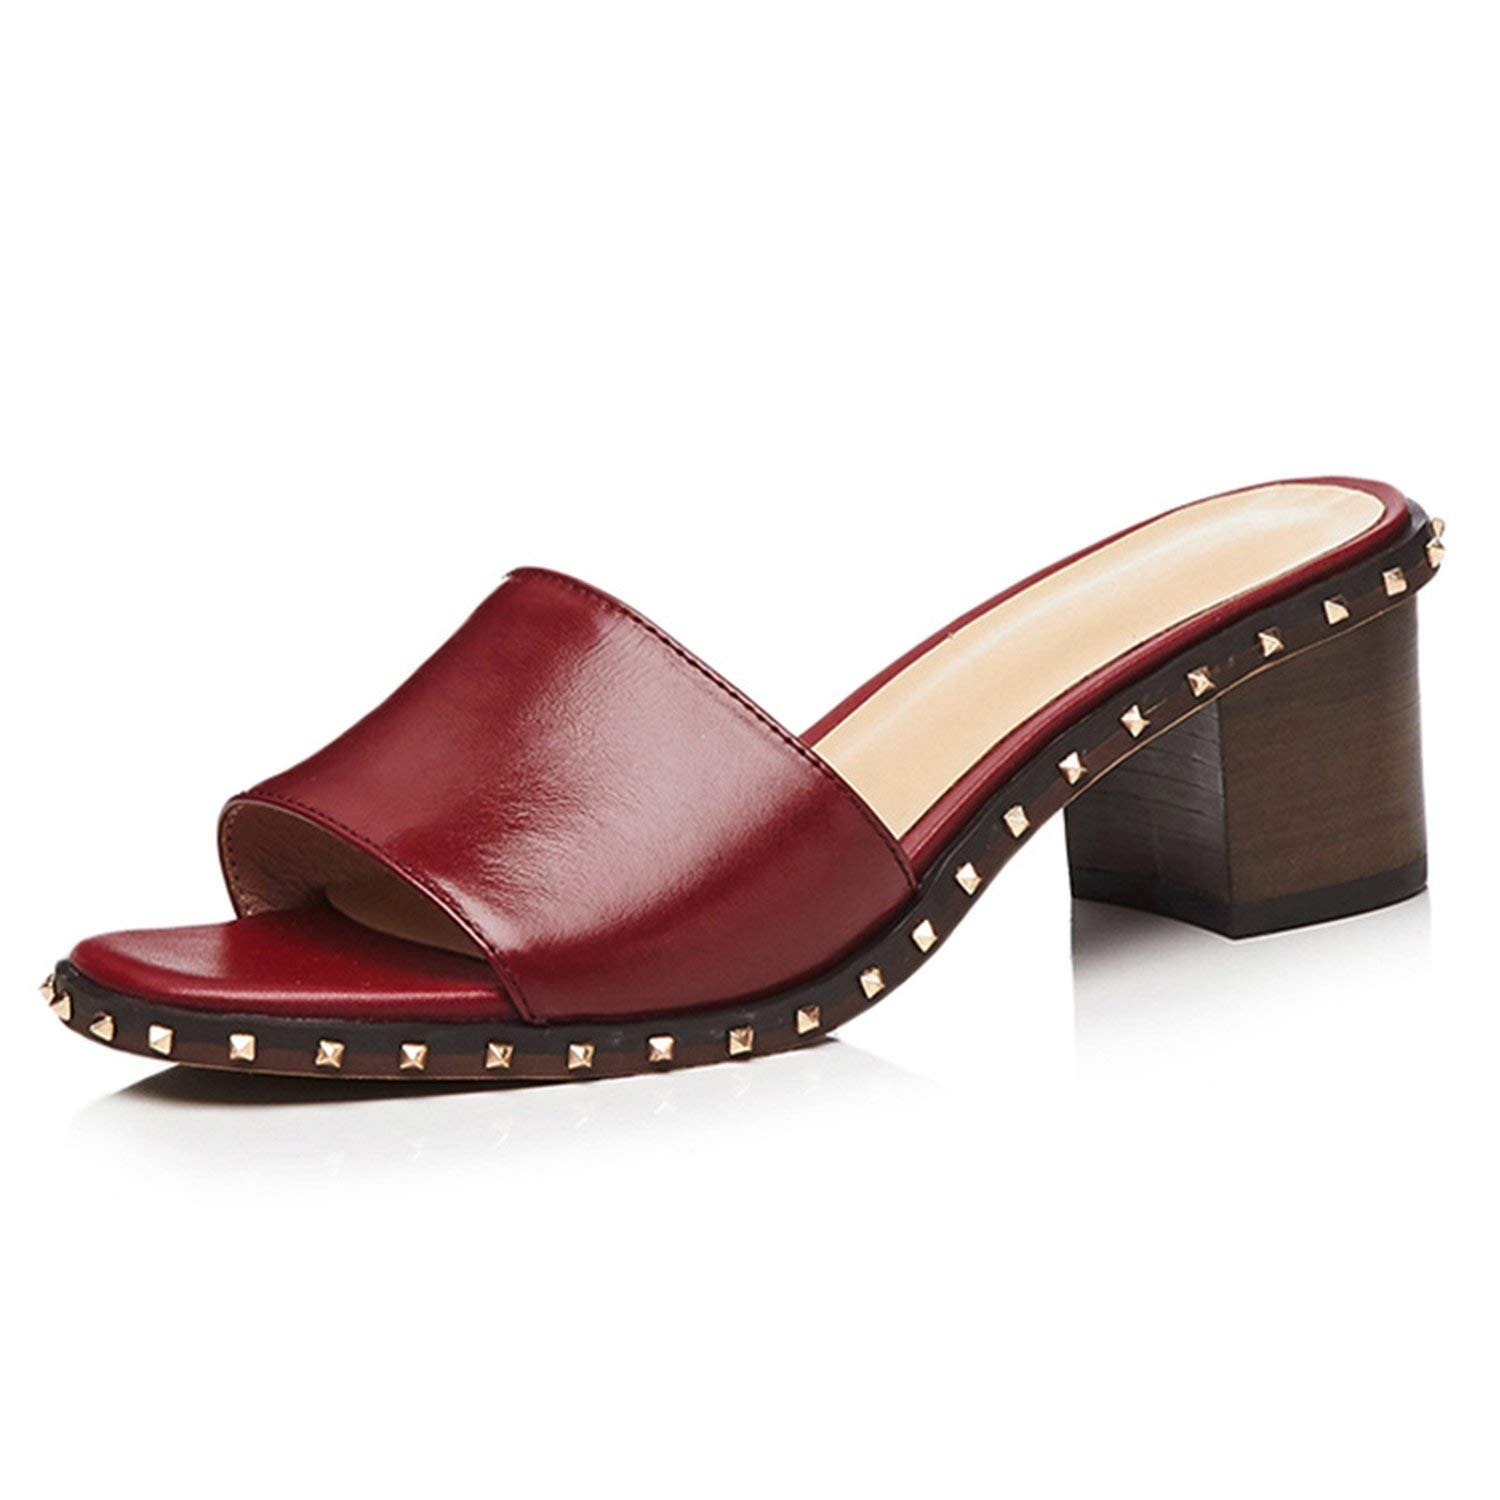 Wine Red I Need-You Wood High Heels Women Slippers Open Toe Rivet Footwear Leather Female Mules shoes Fashion Slides shoes Woman Summer 2019